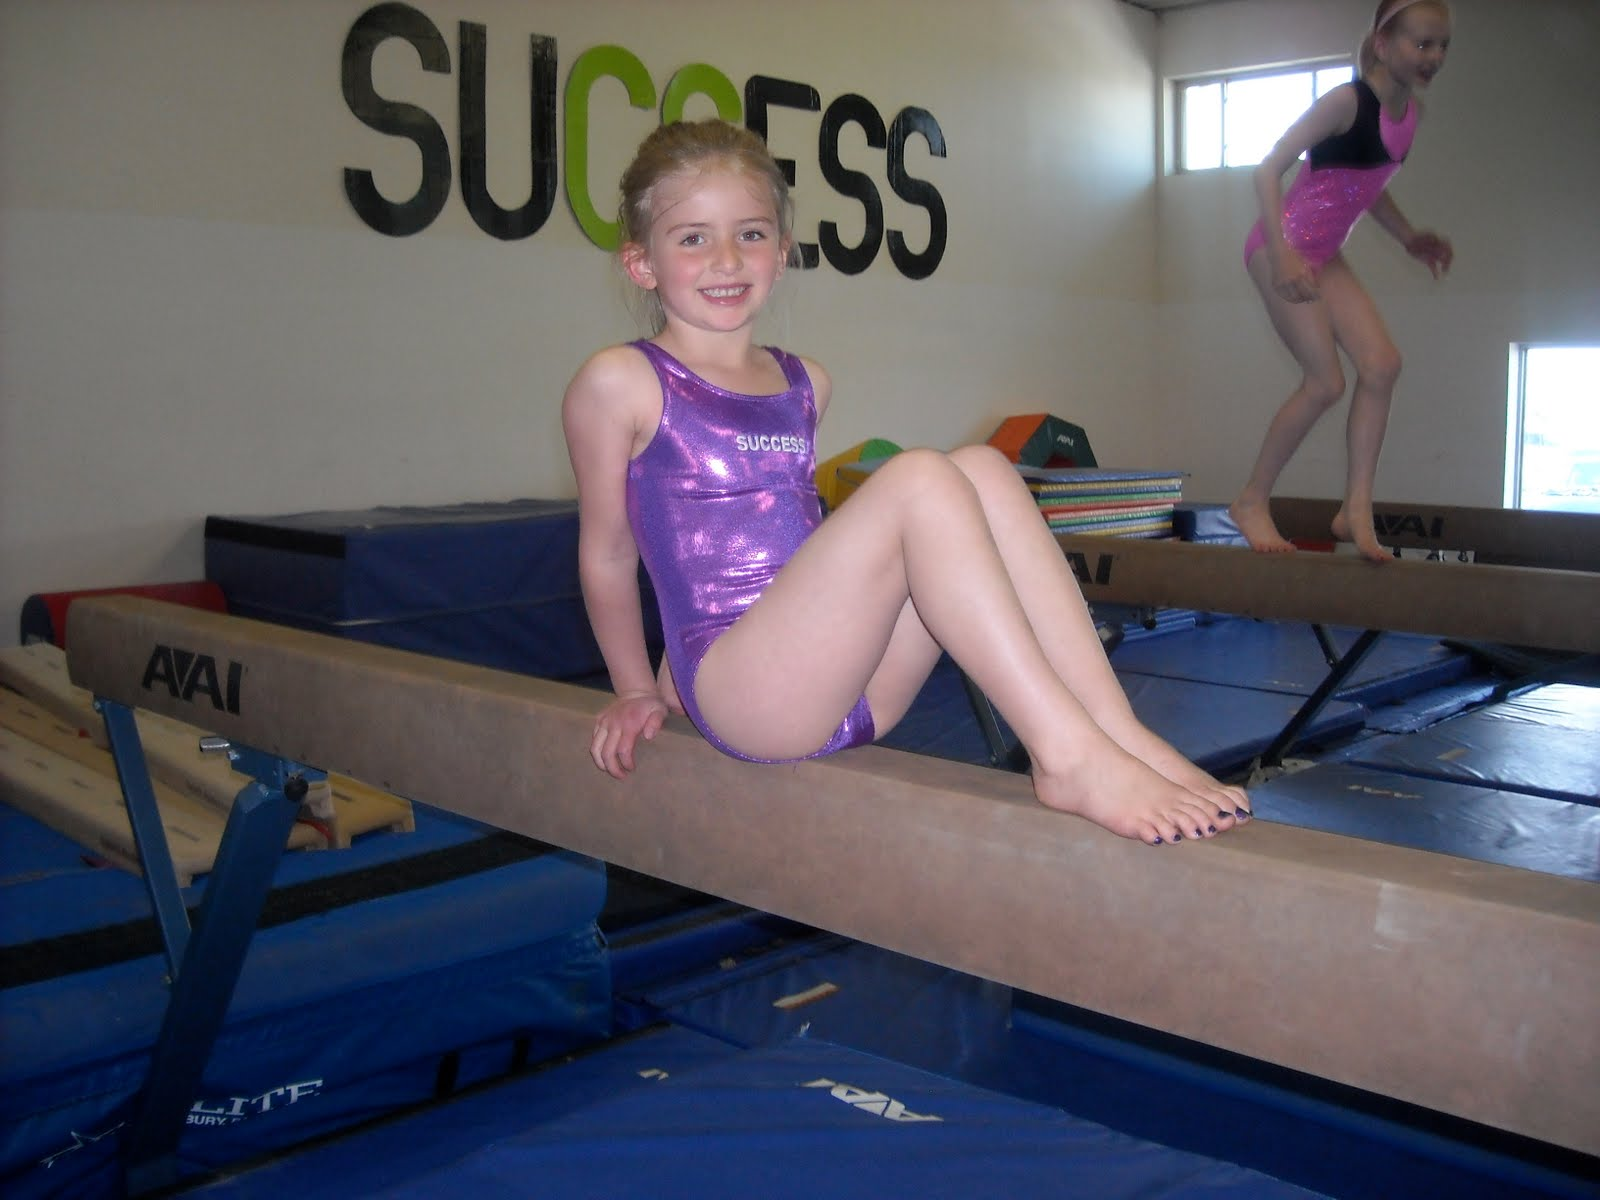 Cute gymnastics teen